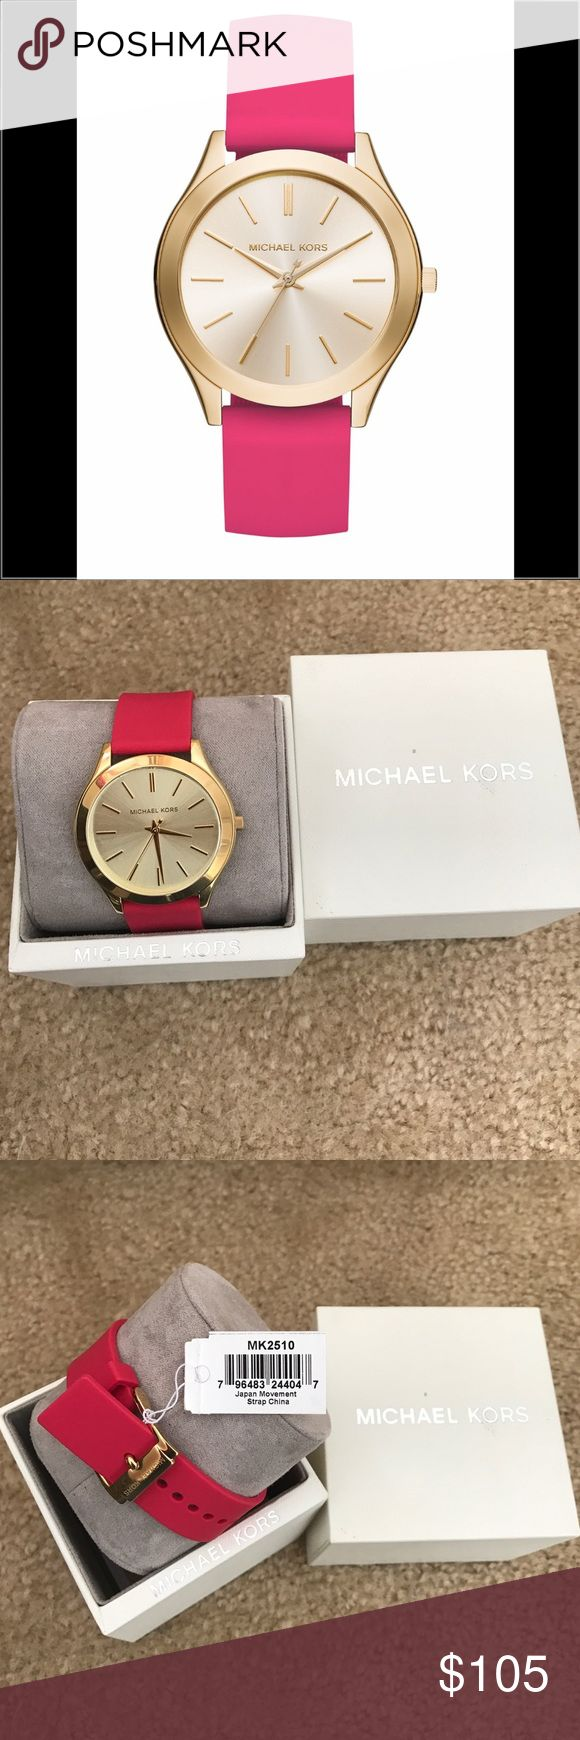 Michael Kors Women's Watch Sporty Pink Silicone Strap Watch Michael Kors Jewelry